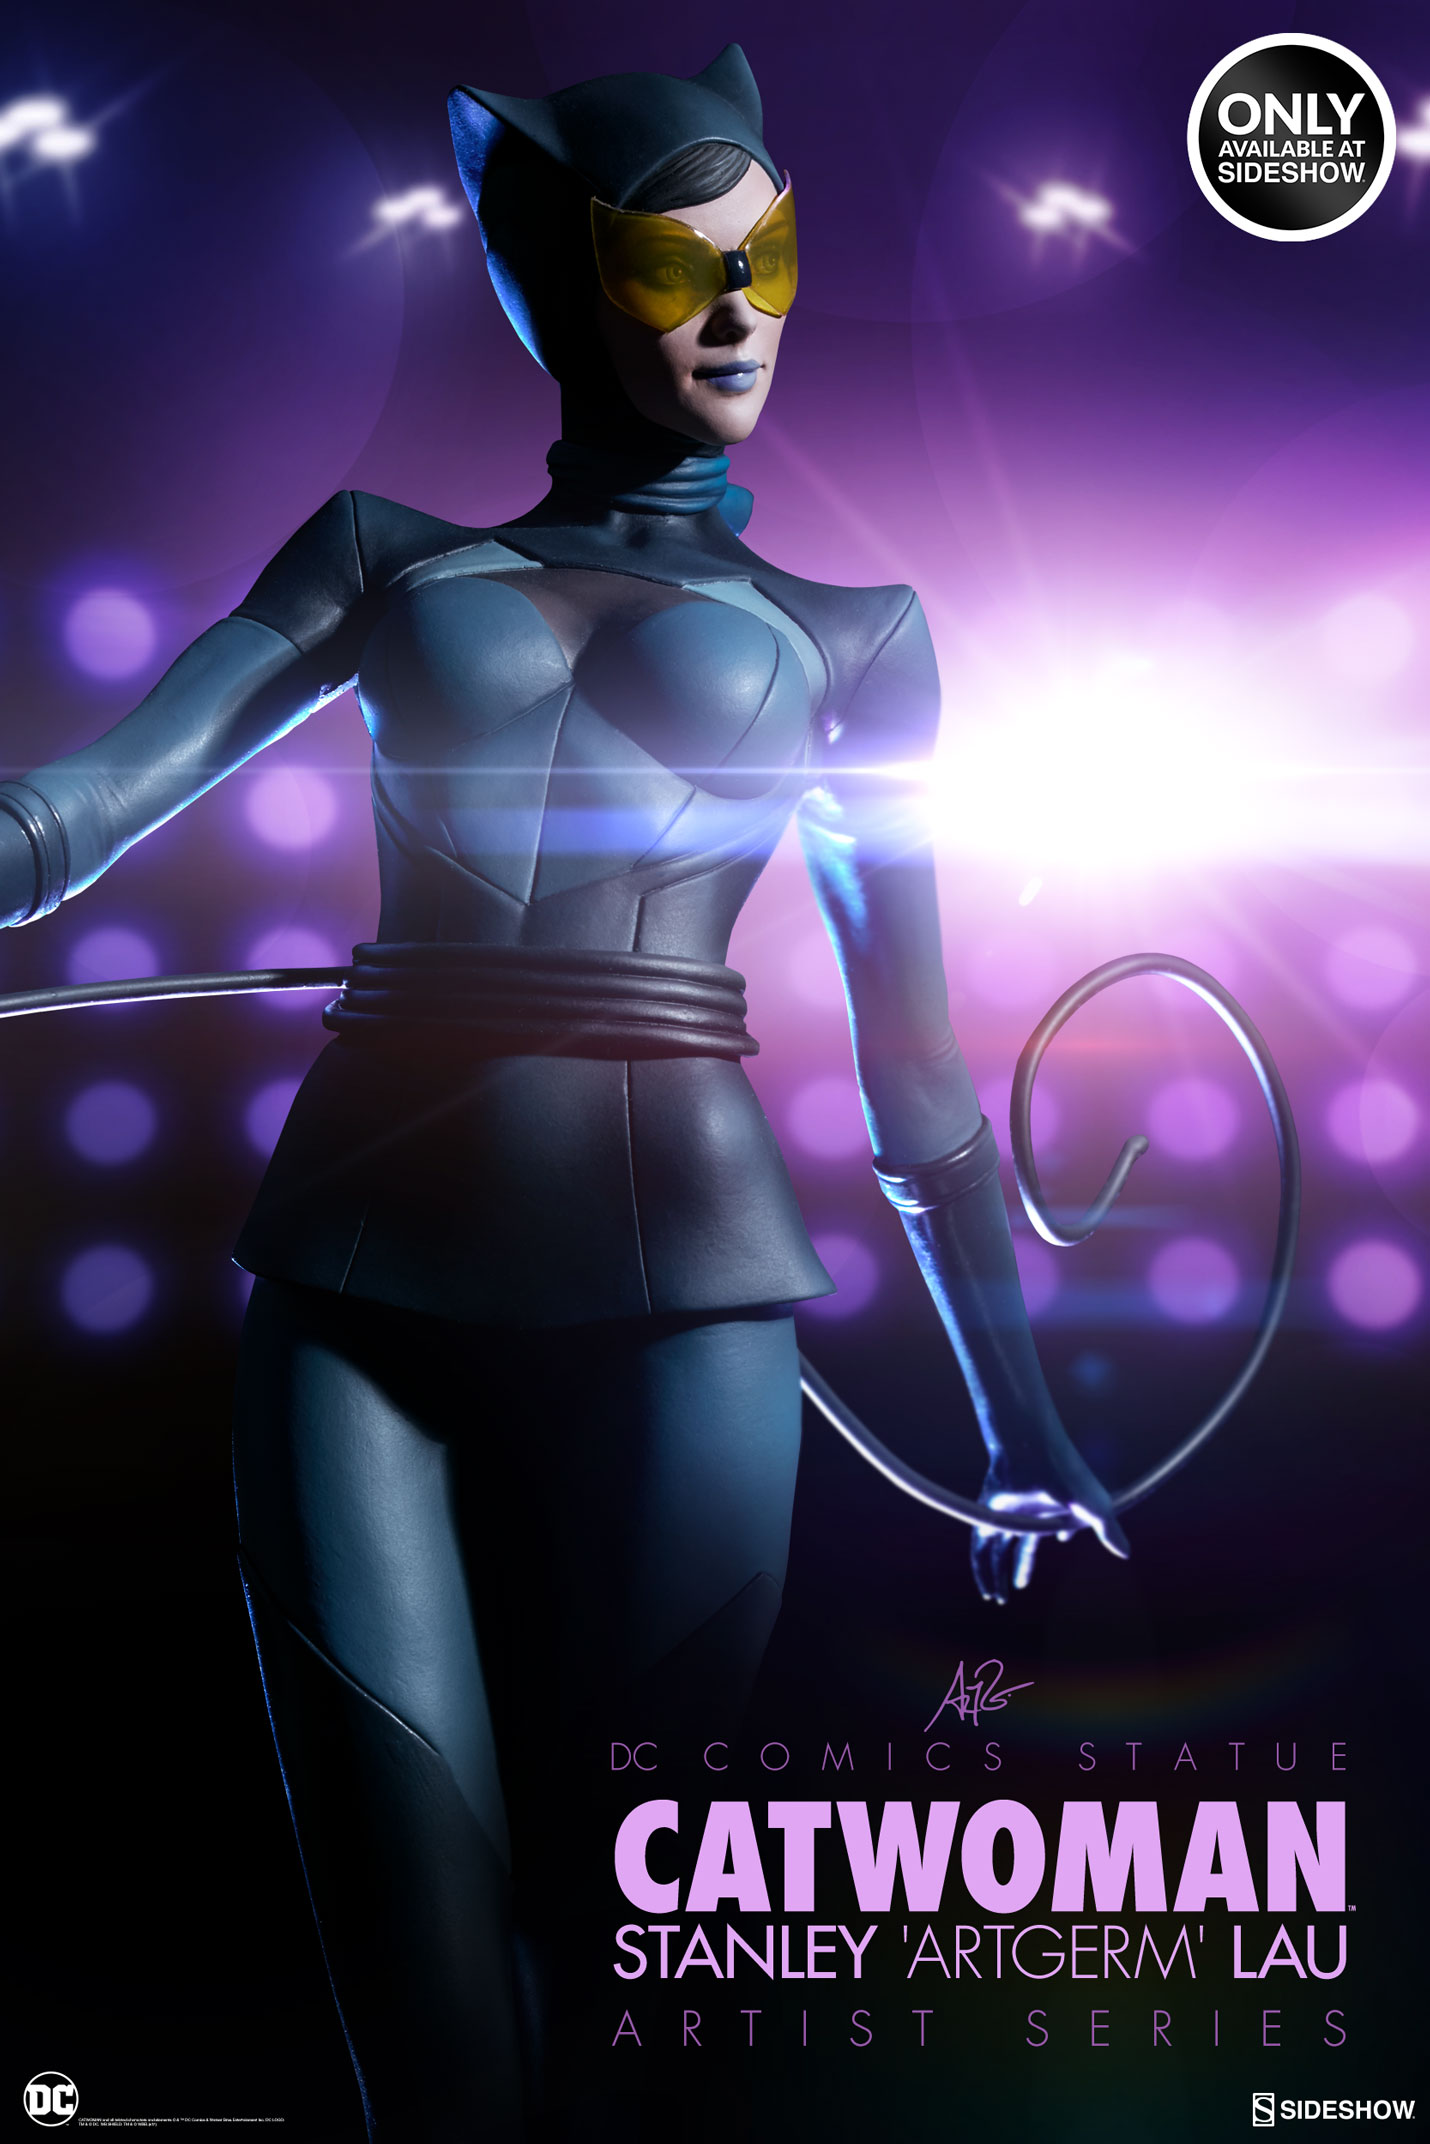 Catwoman Stanley Artgerm Lau Artist Series Statue by ...